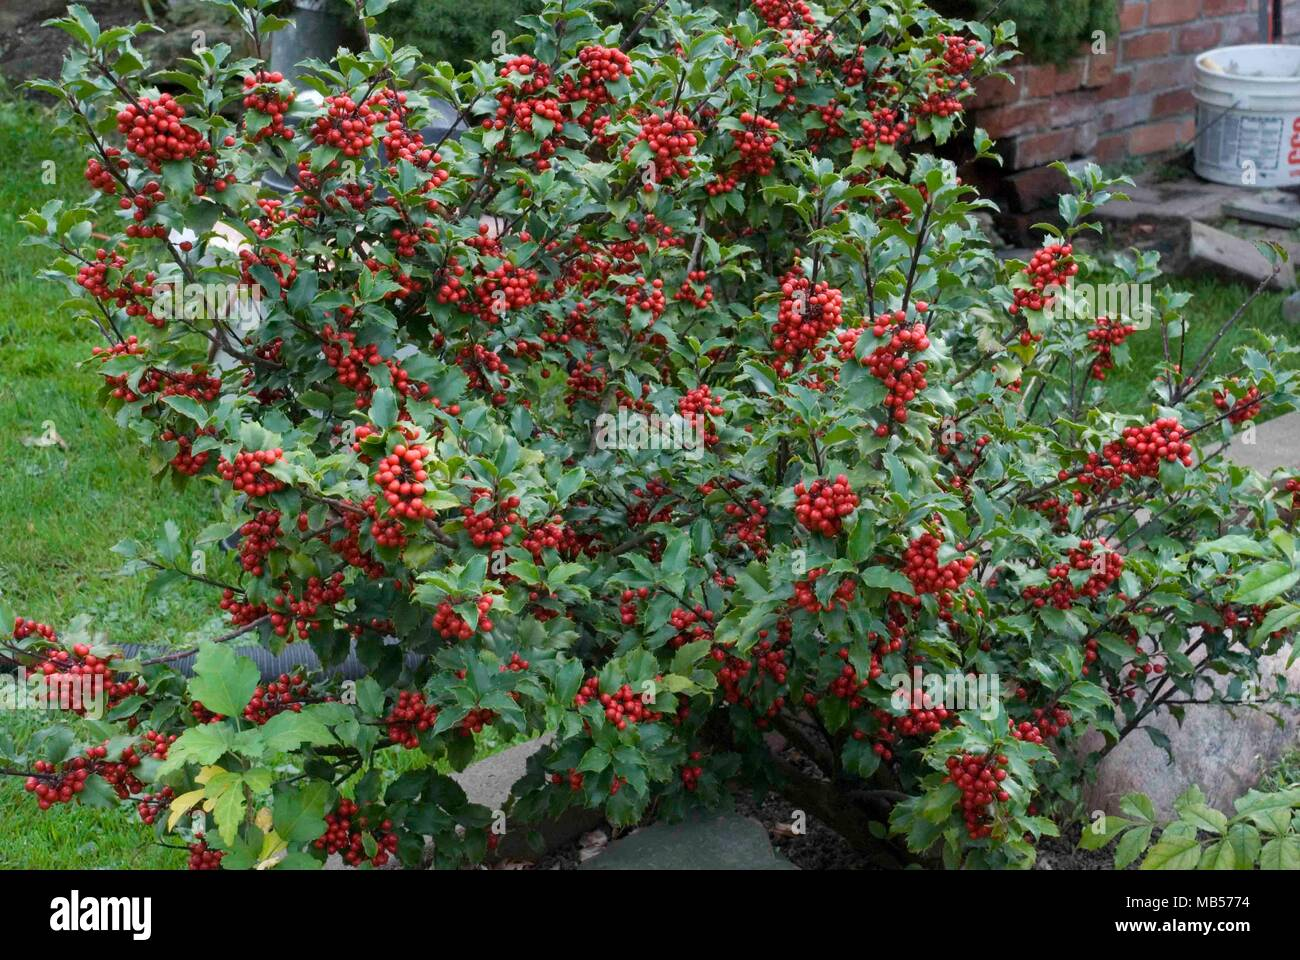 Red, bright, Canadian winter berries in a bundle. - Stock Image